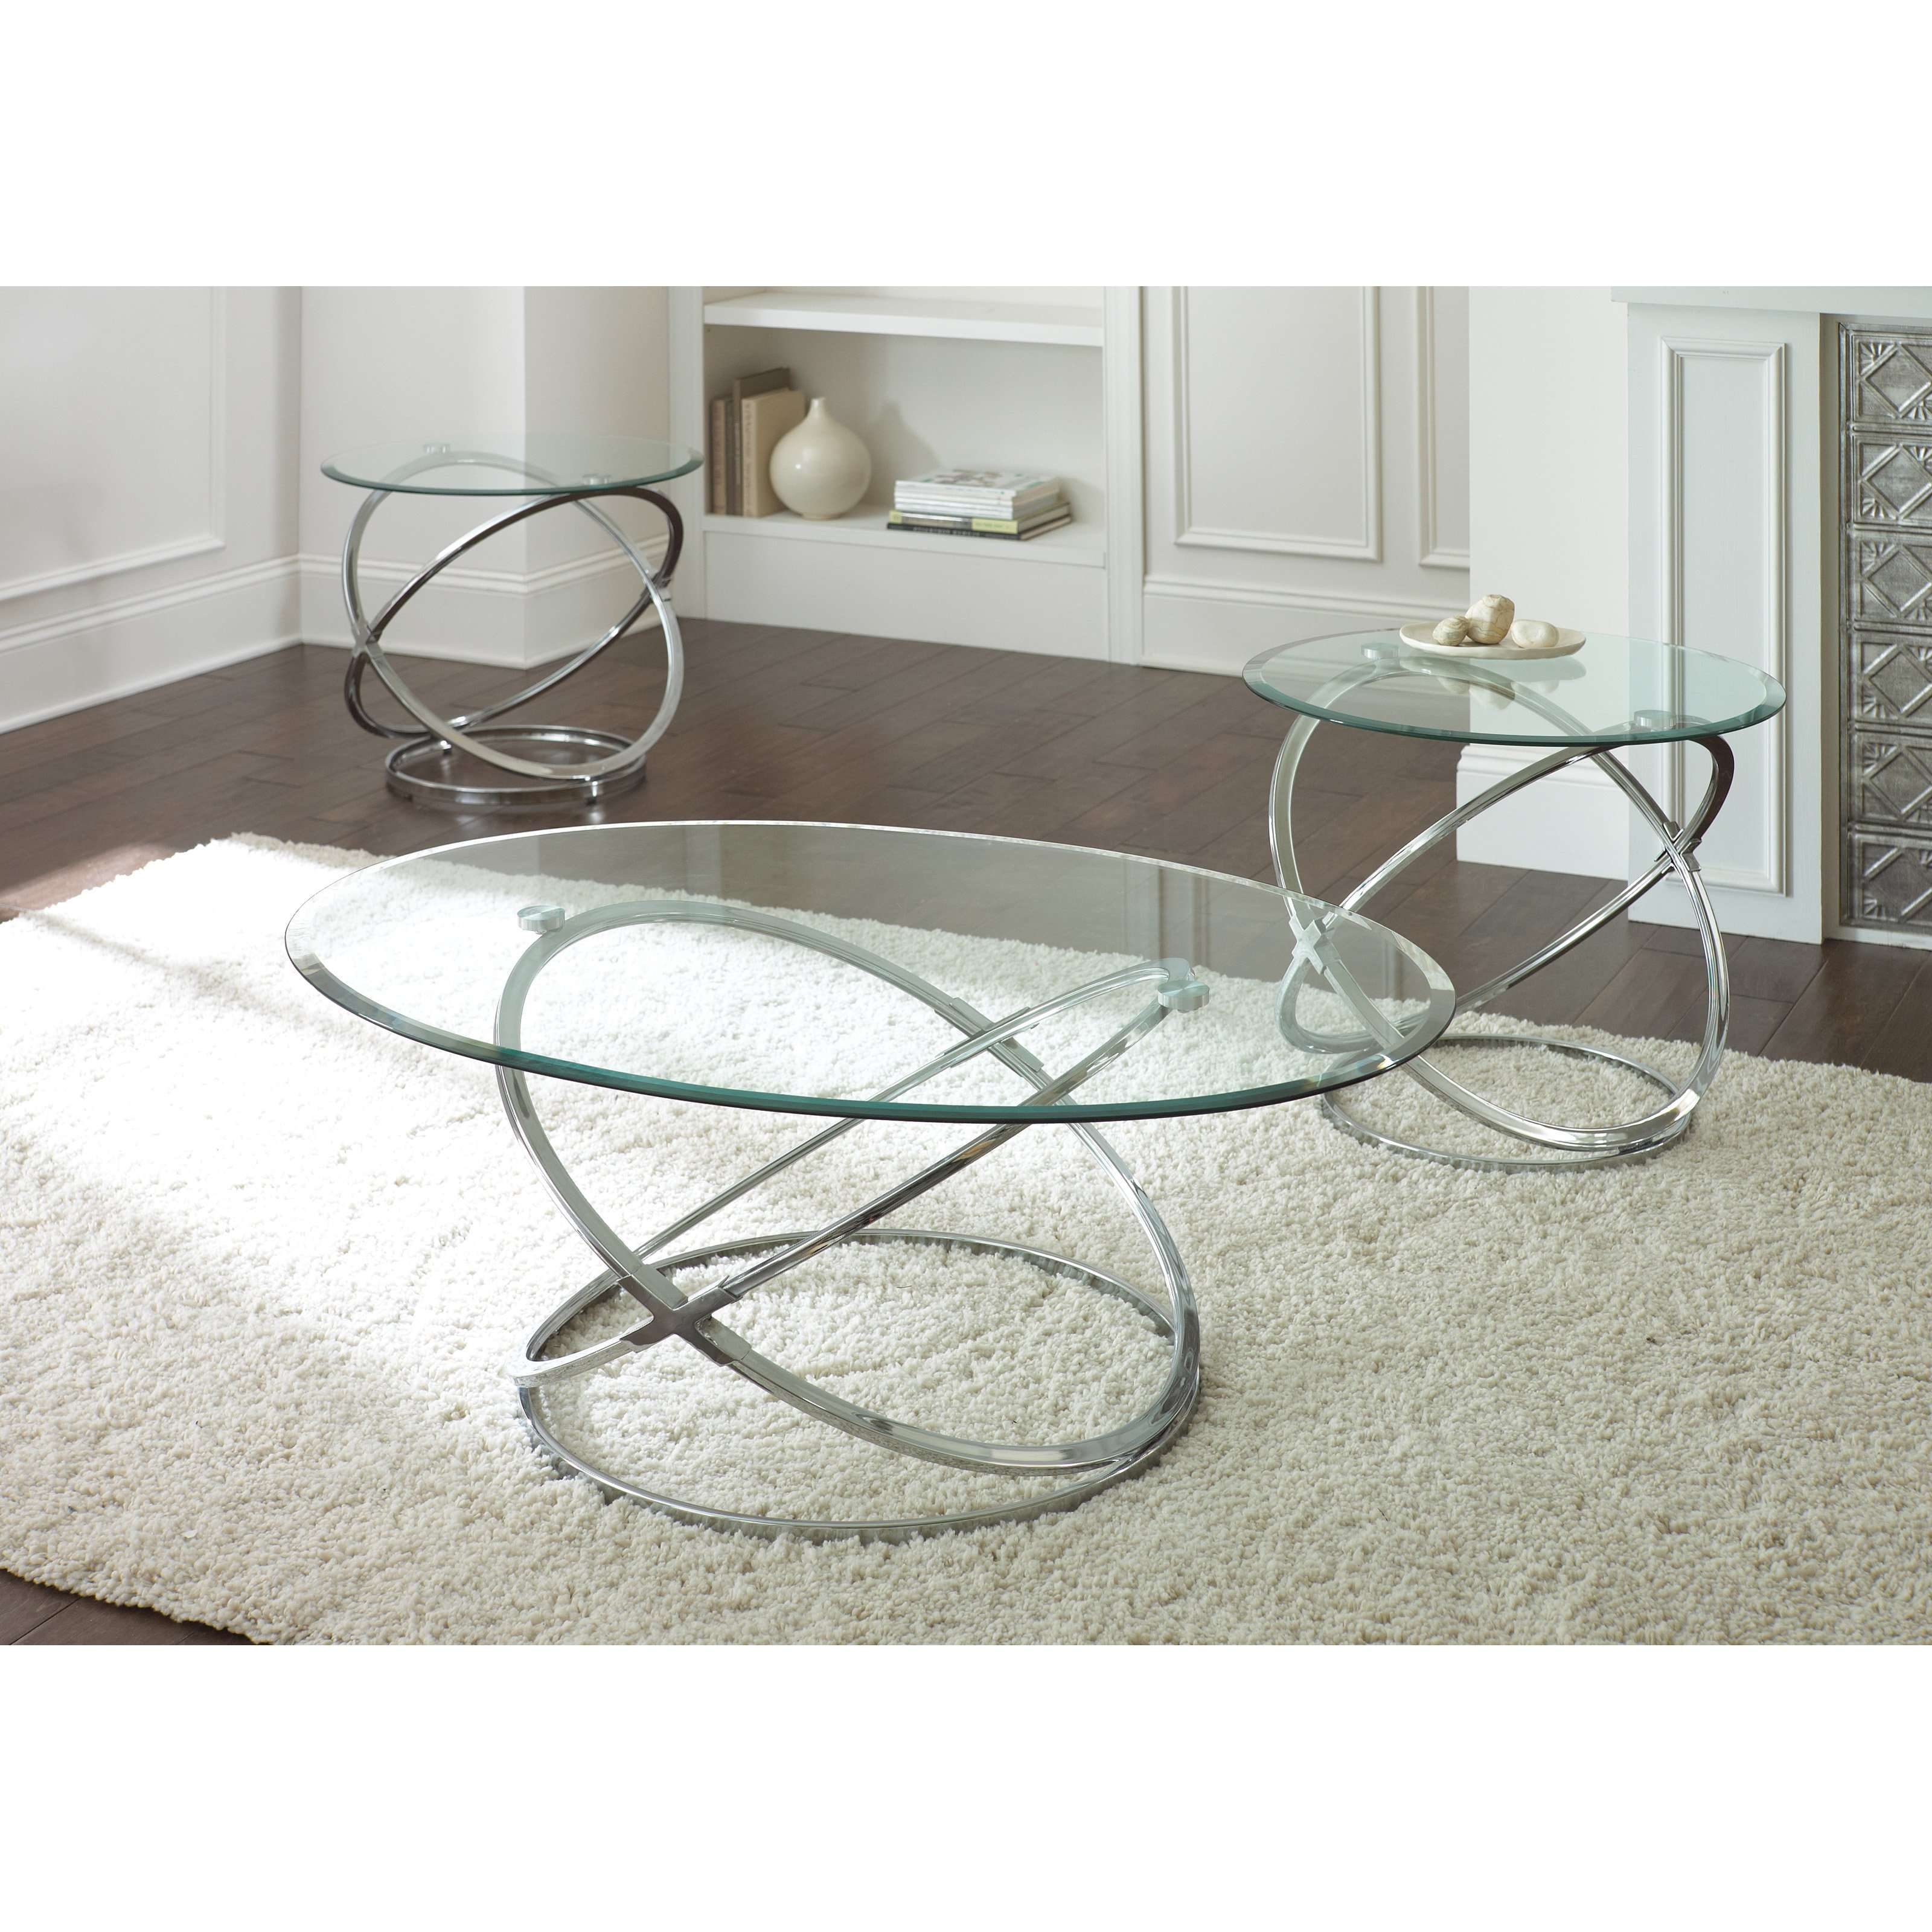 Steve Silver Orion Oval Chrome And Glass Coffee Table Set (View 7 of 20)